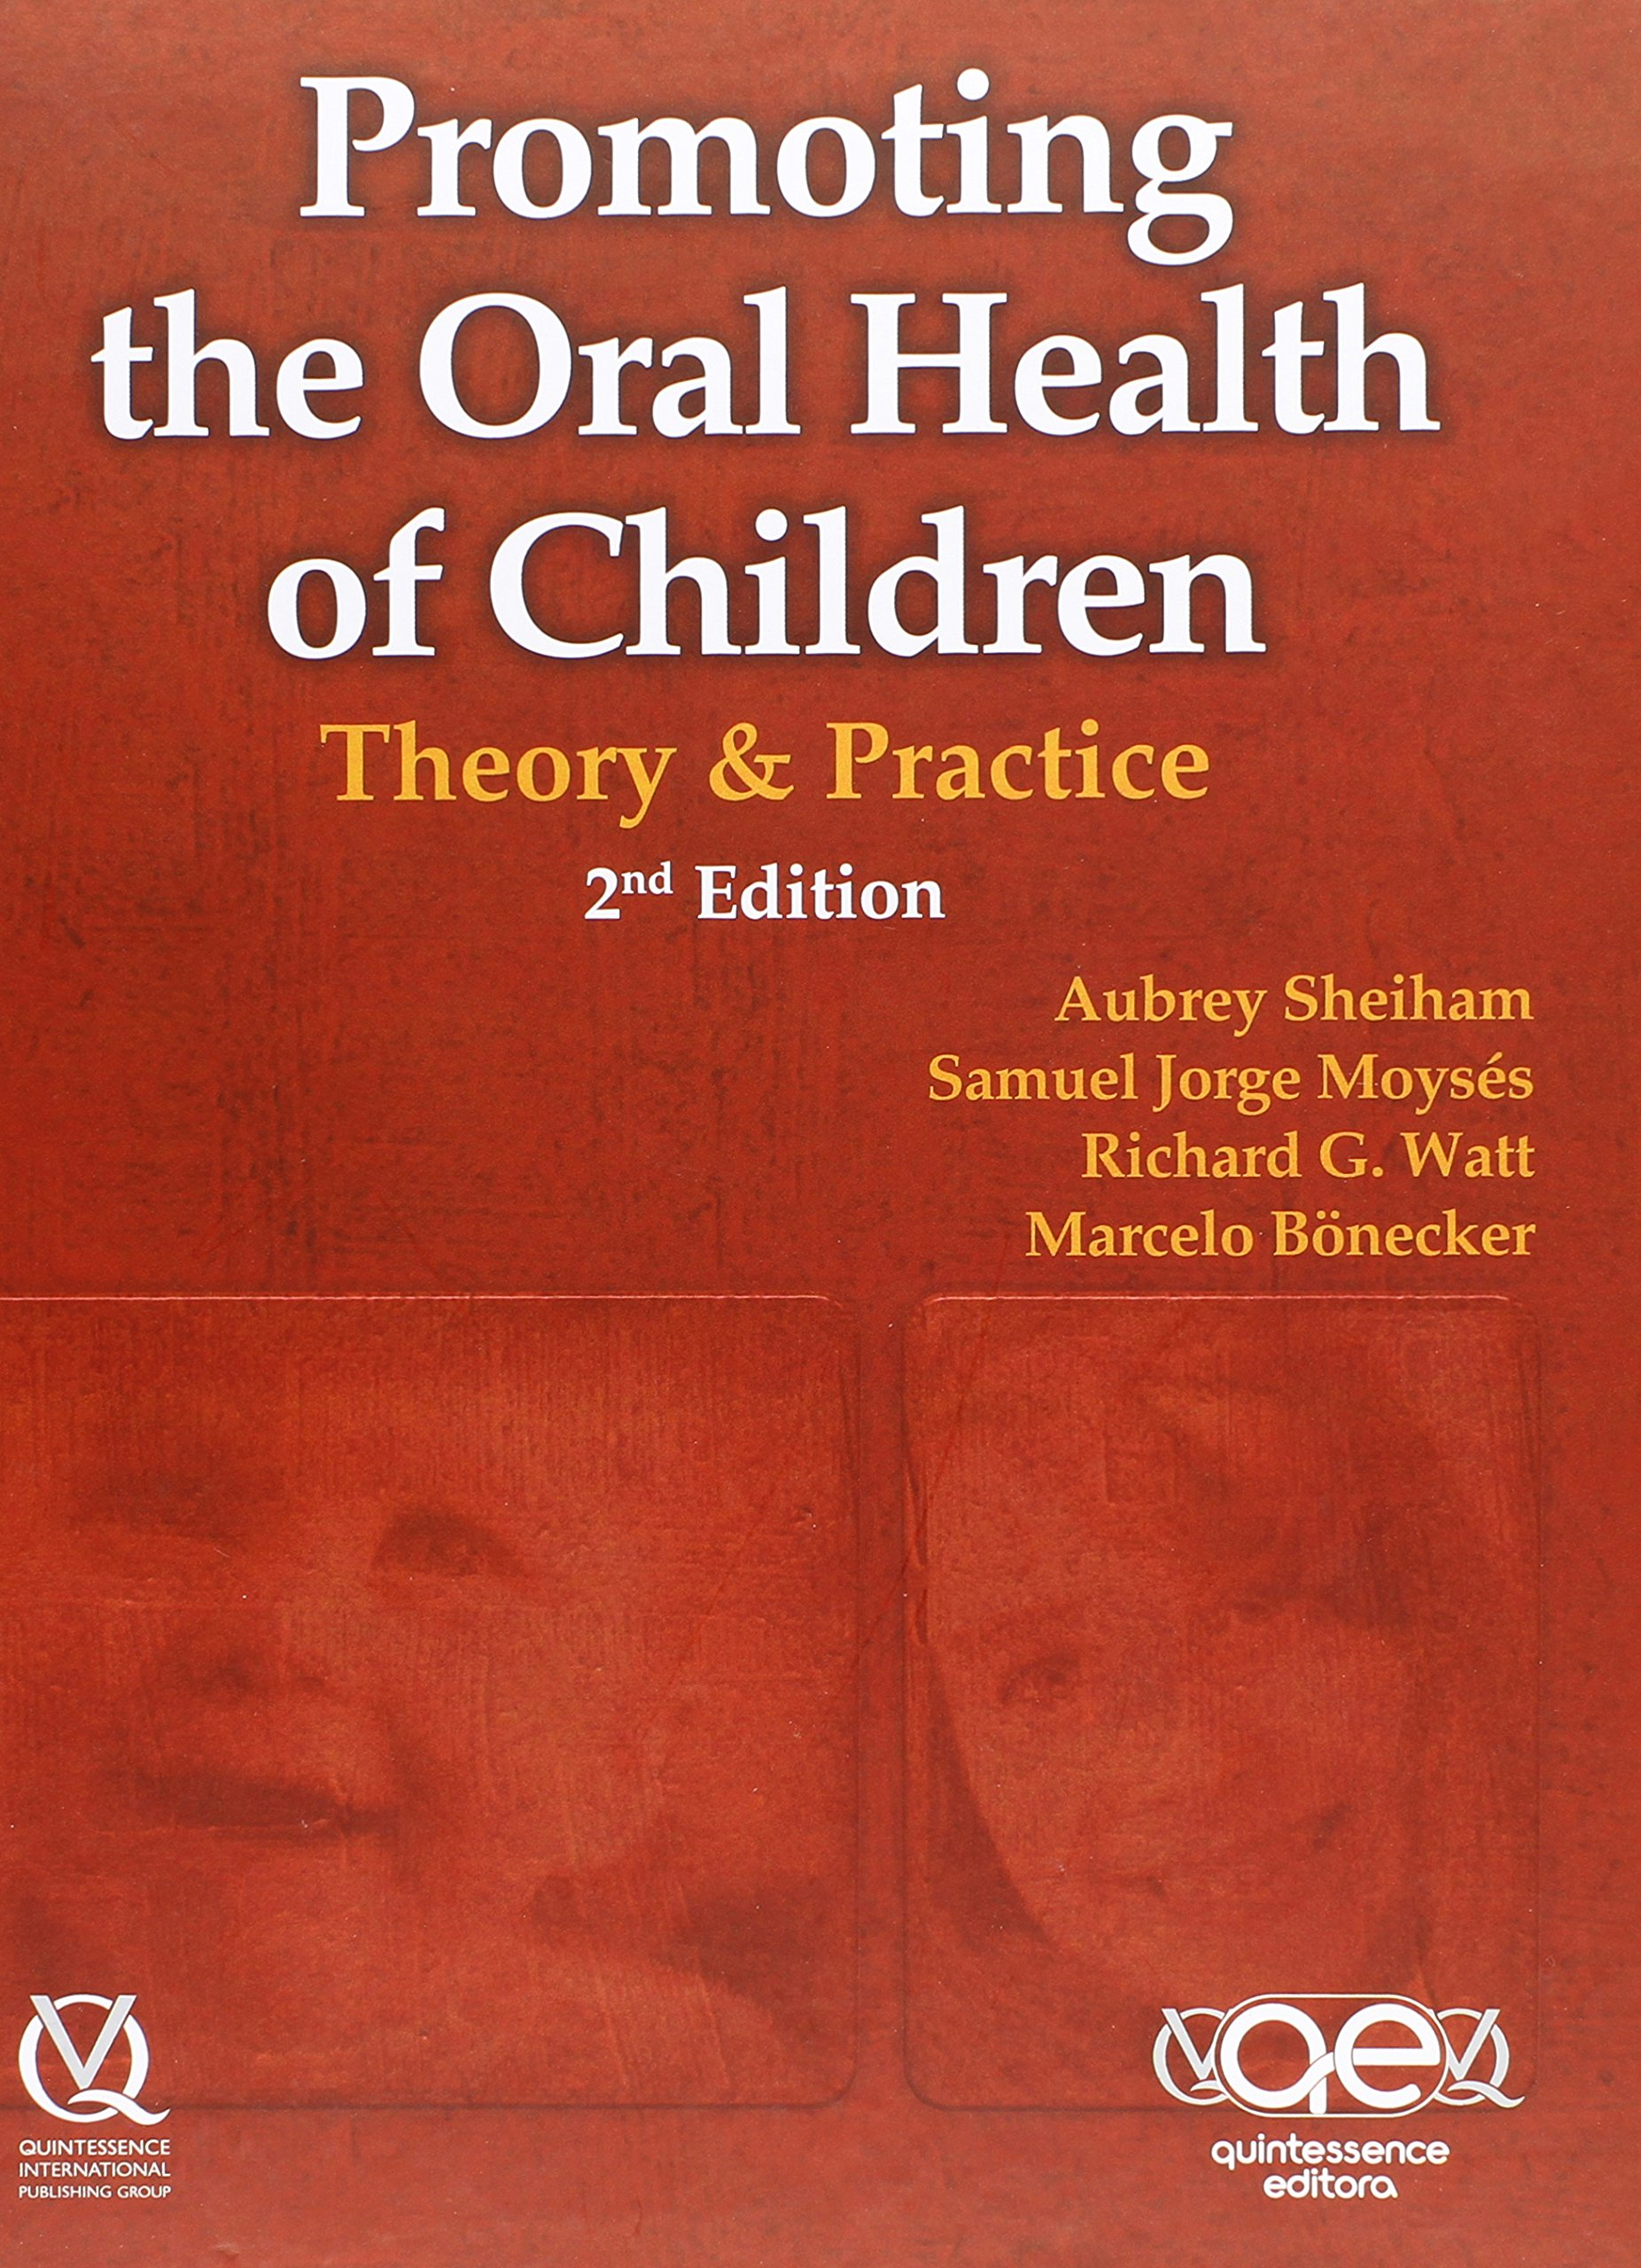 Promoting the Oral Health of Children: Theory and Practice, Second Edition